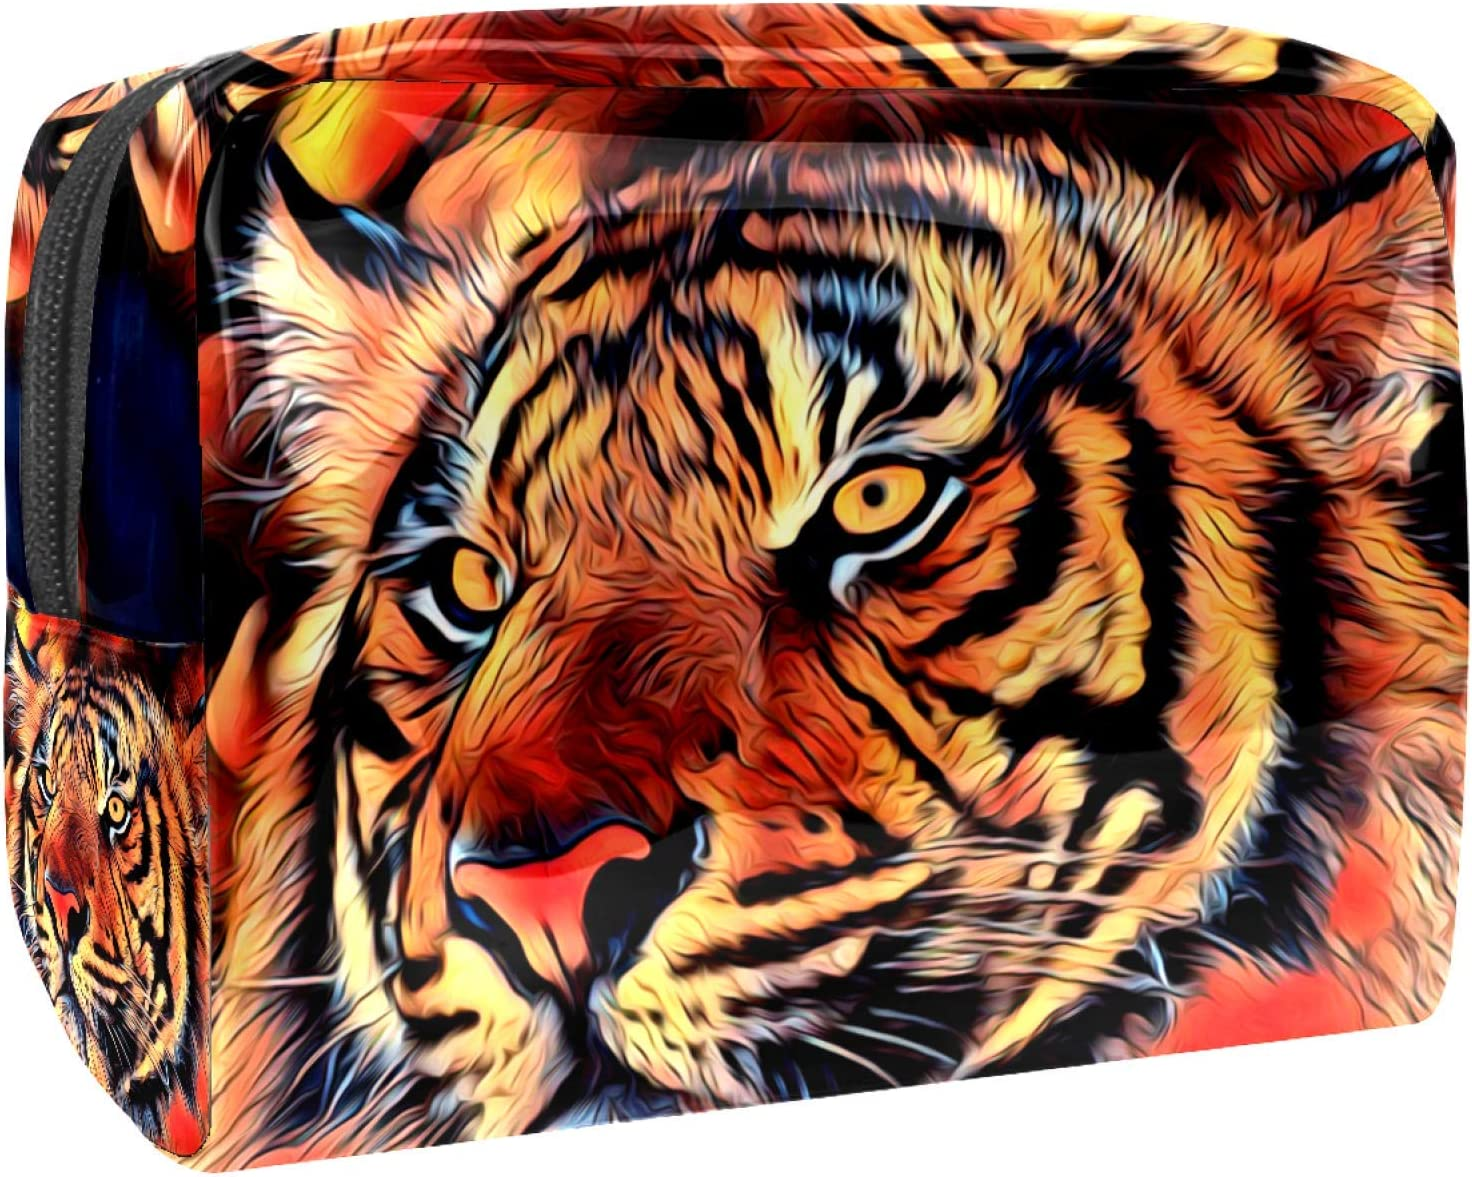 Cosmetic Max 78% OFF Bag San Jose Mall for Women Roomy Makeup tiger Trav 2 Painting Bags